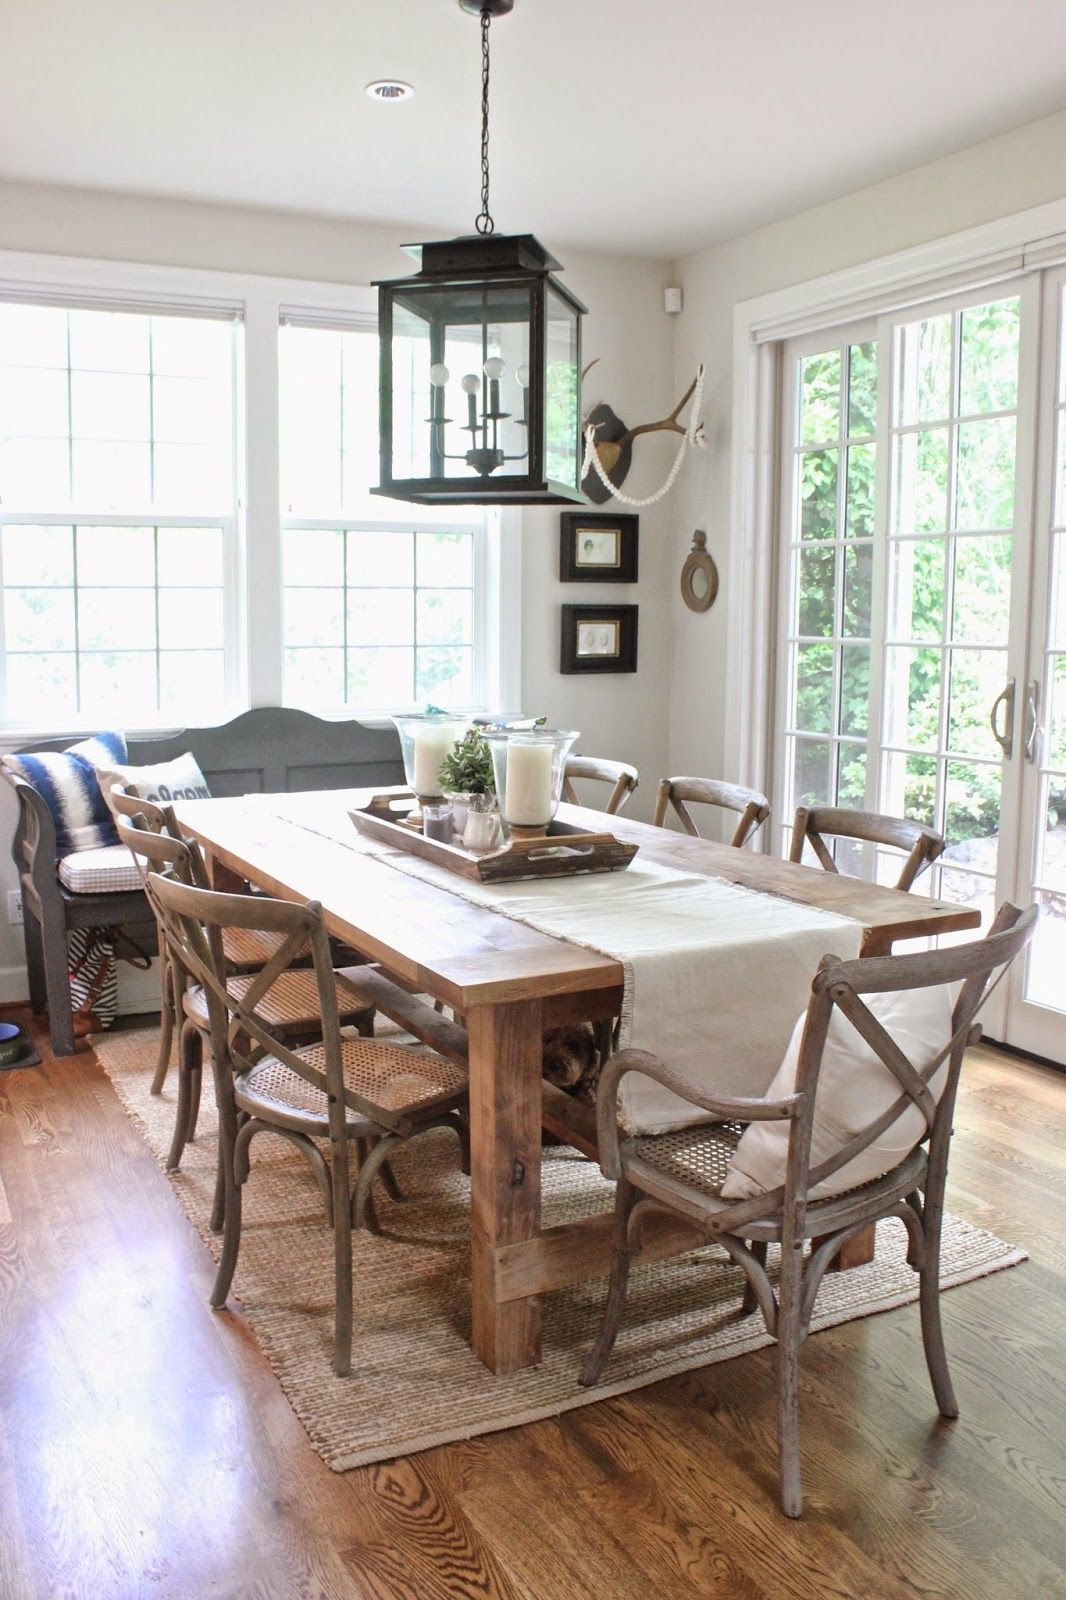 Our Home The Spring Version Farmhouse Dining Room Table Dining Room Table Centerpieces Rustic Dining Room